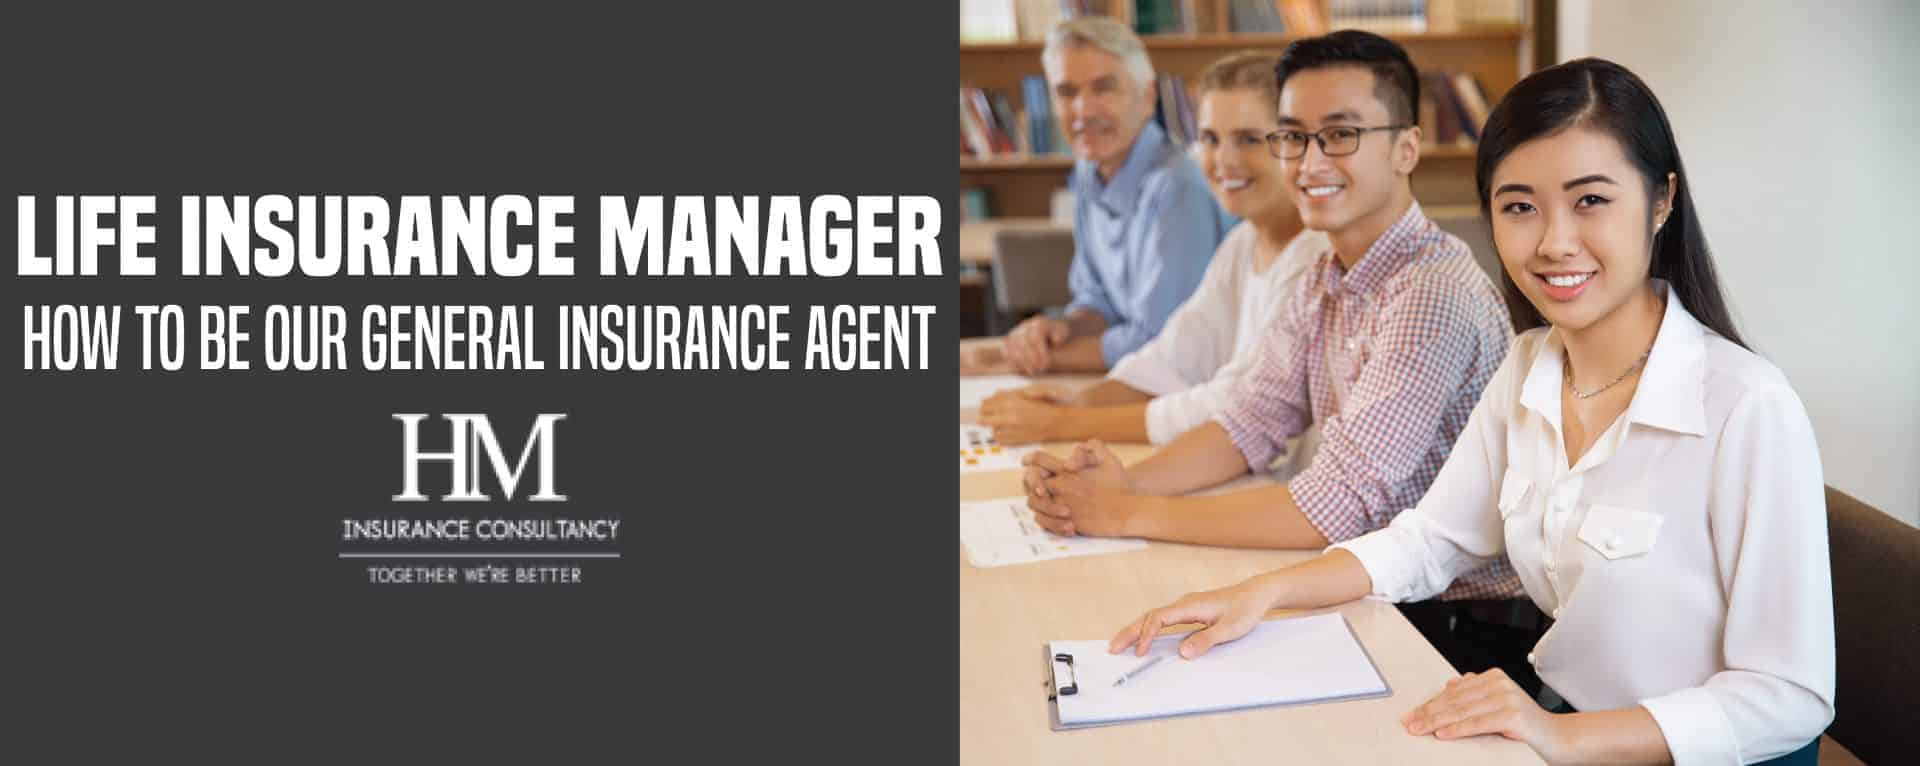 HMConsultancy_Life Insurance Manager